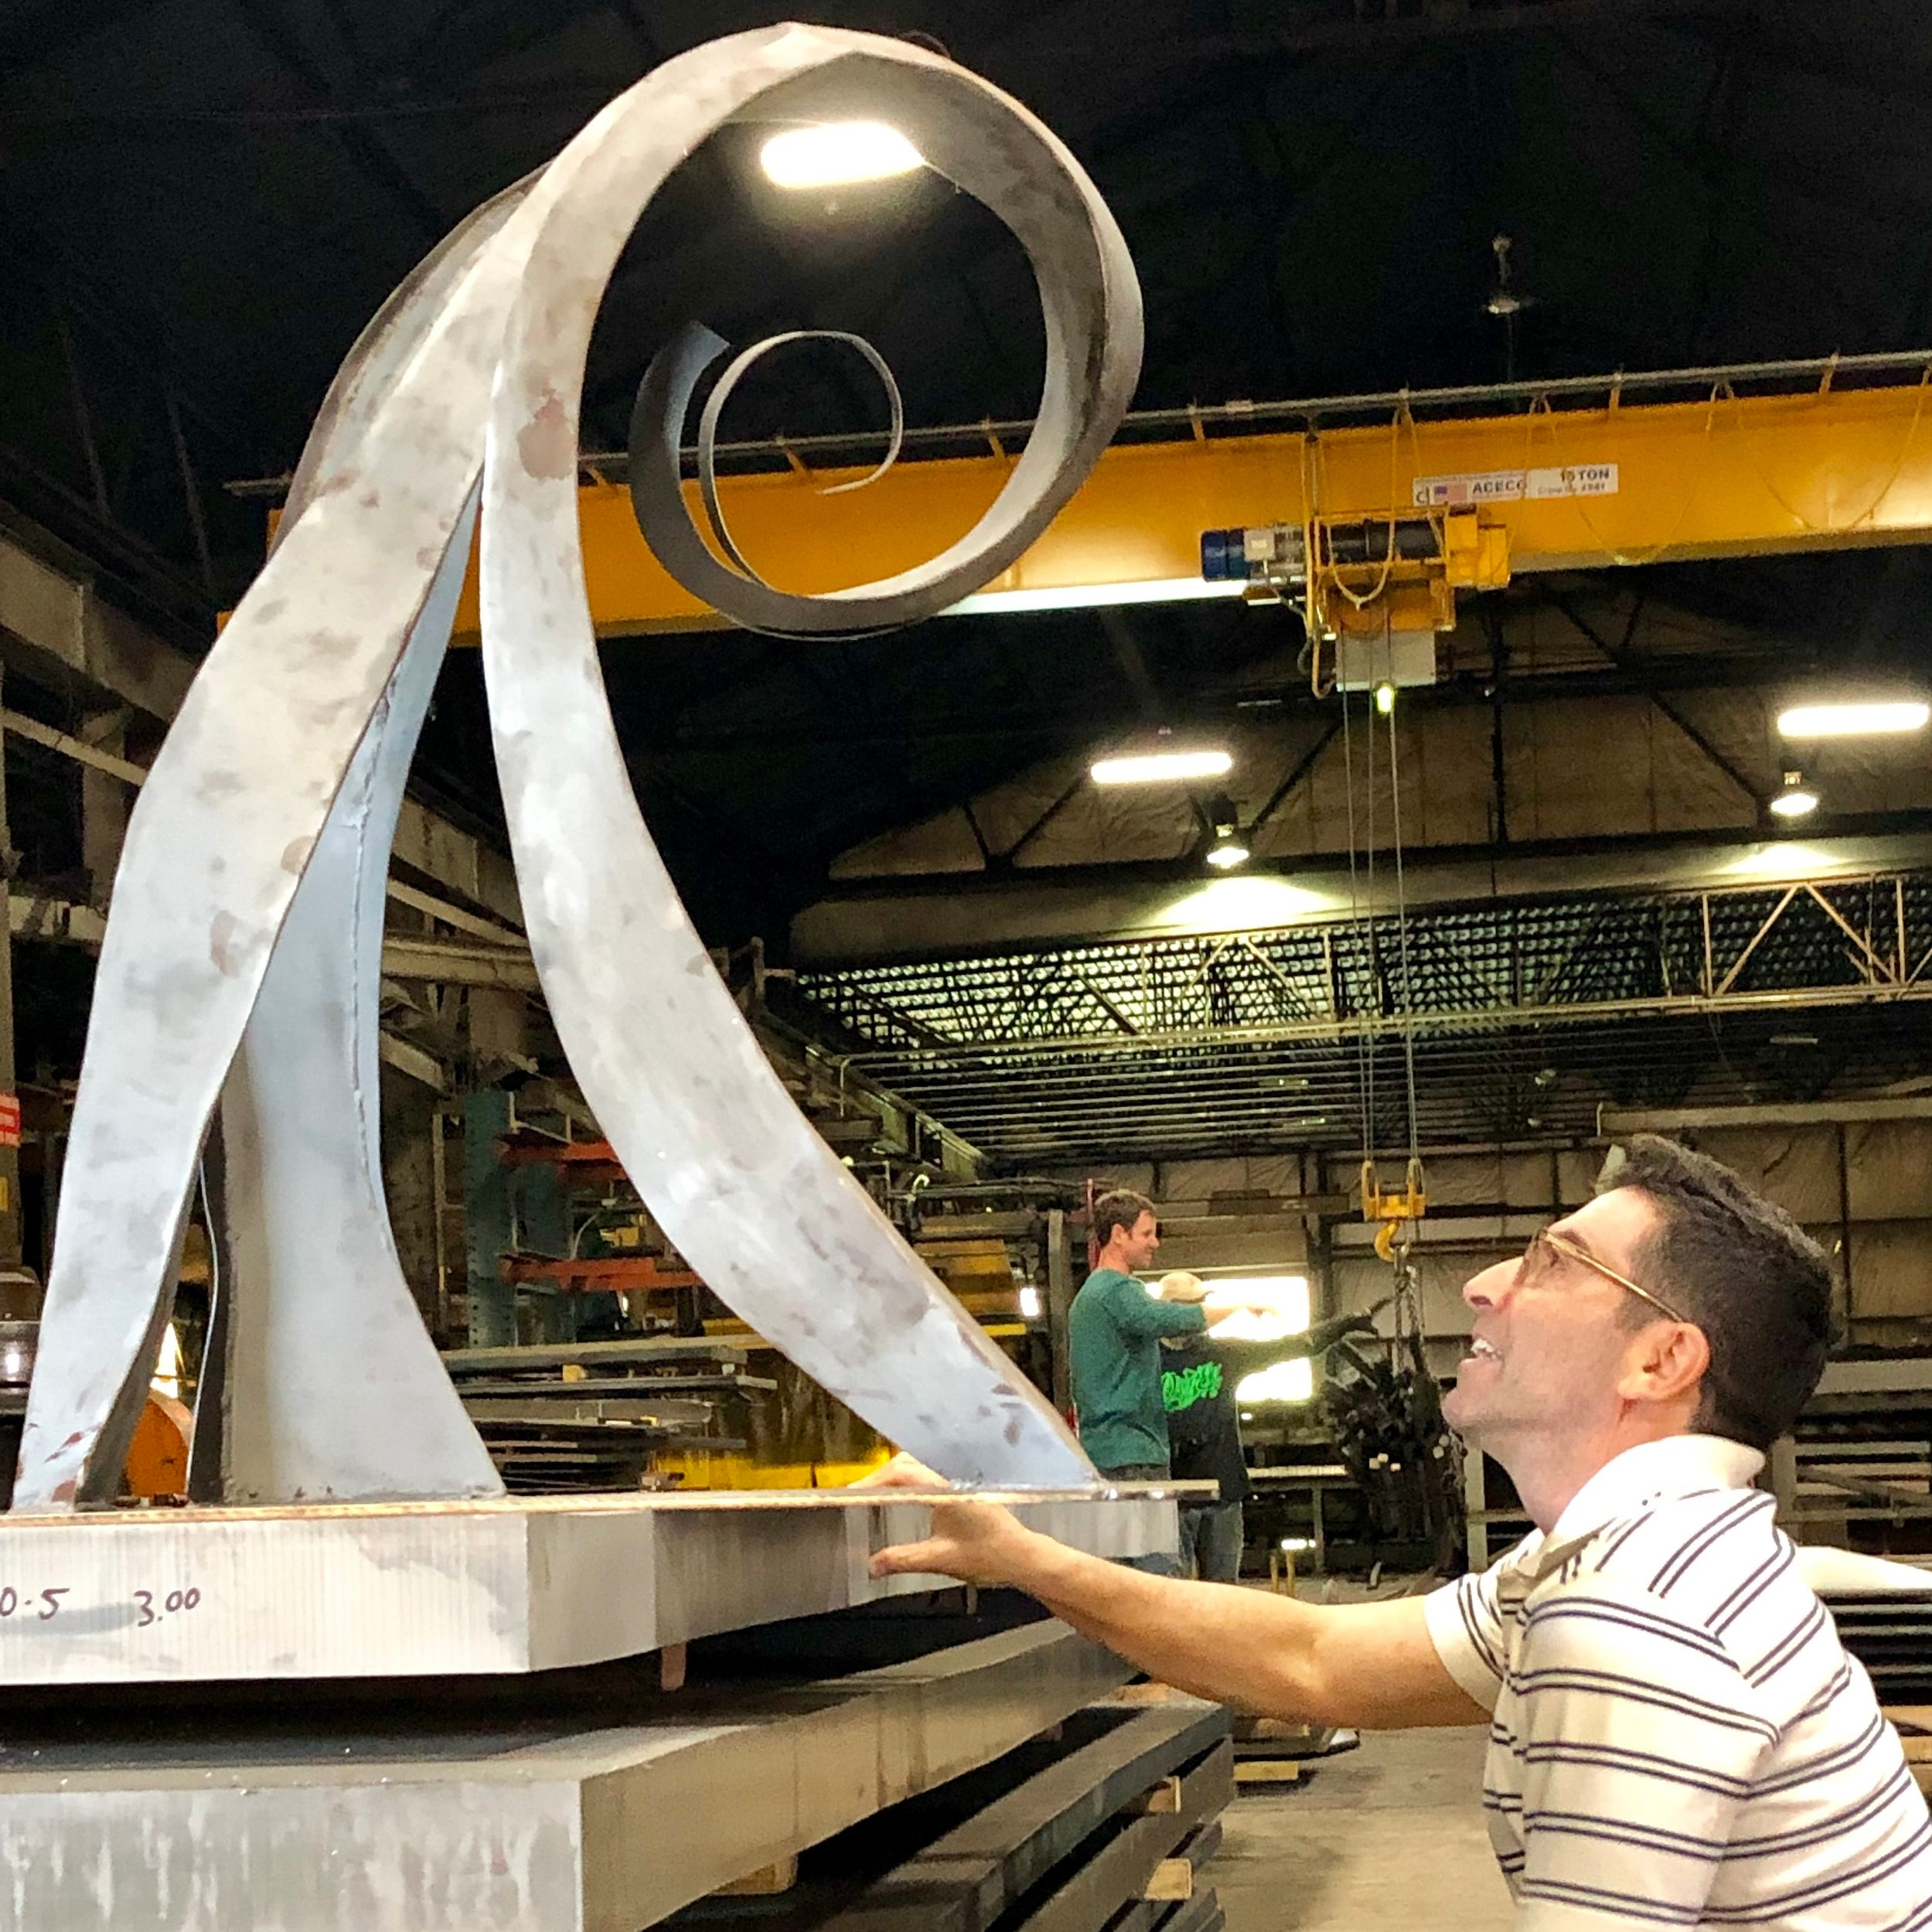 With 3' model of Wavehenge at Brandywine Valley Fabricators